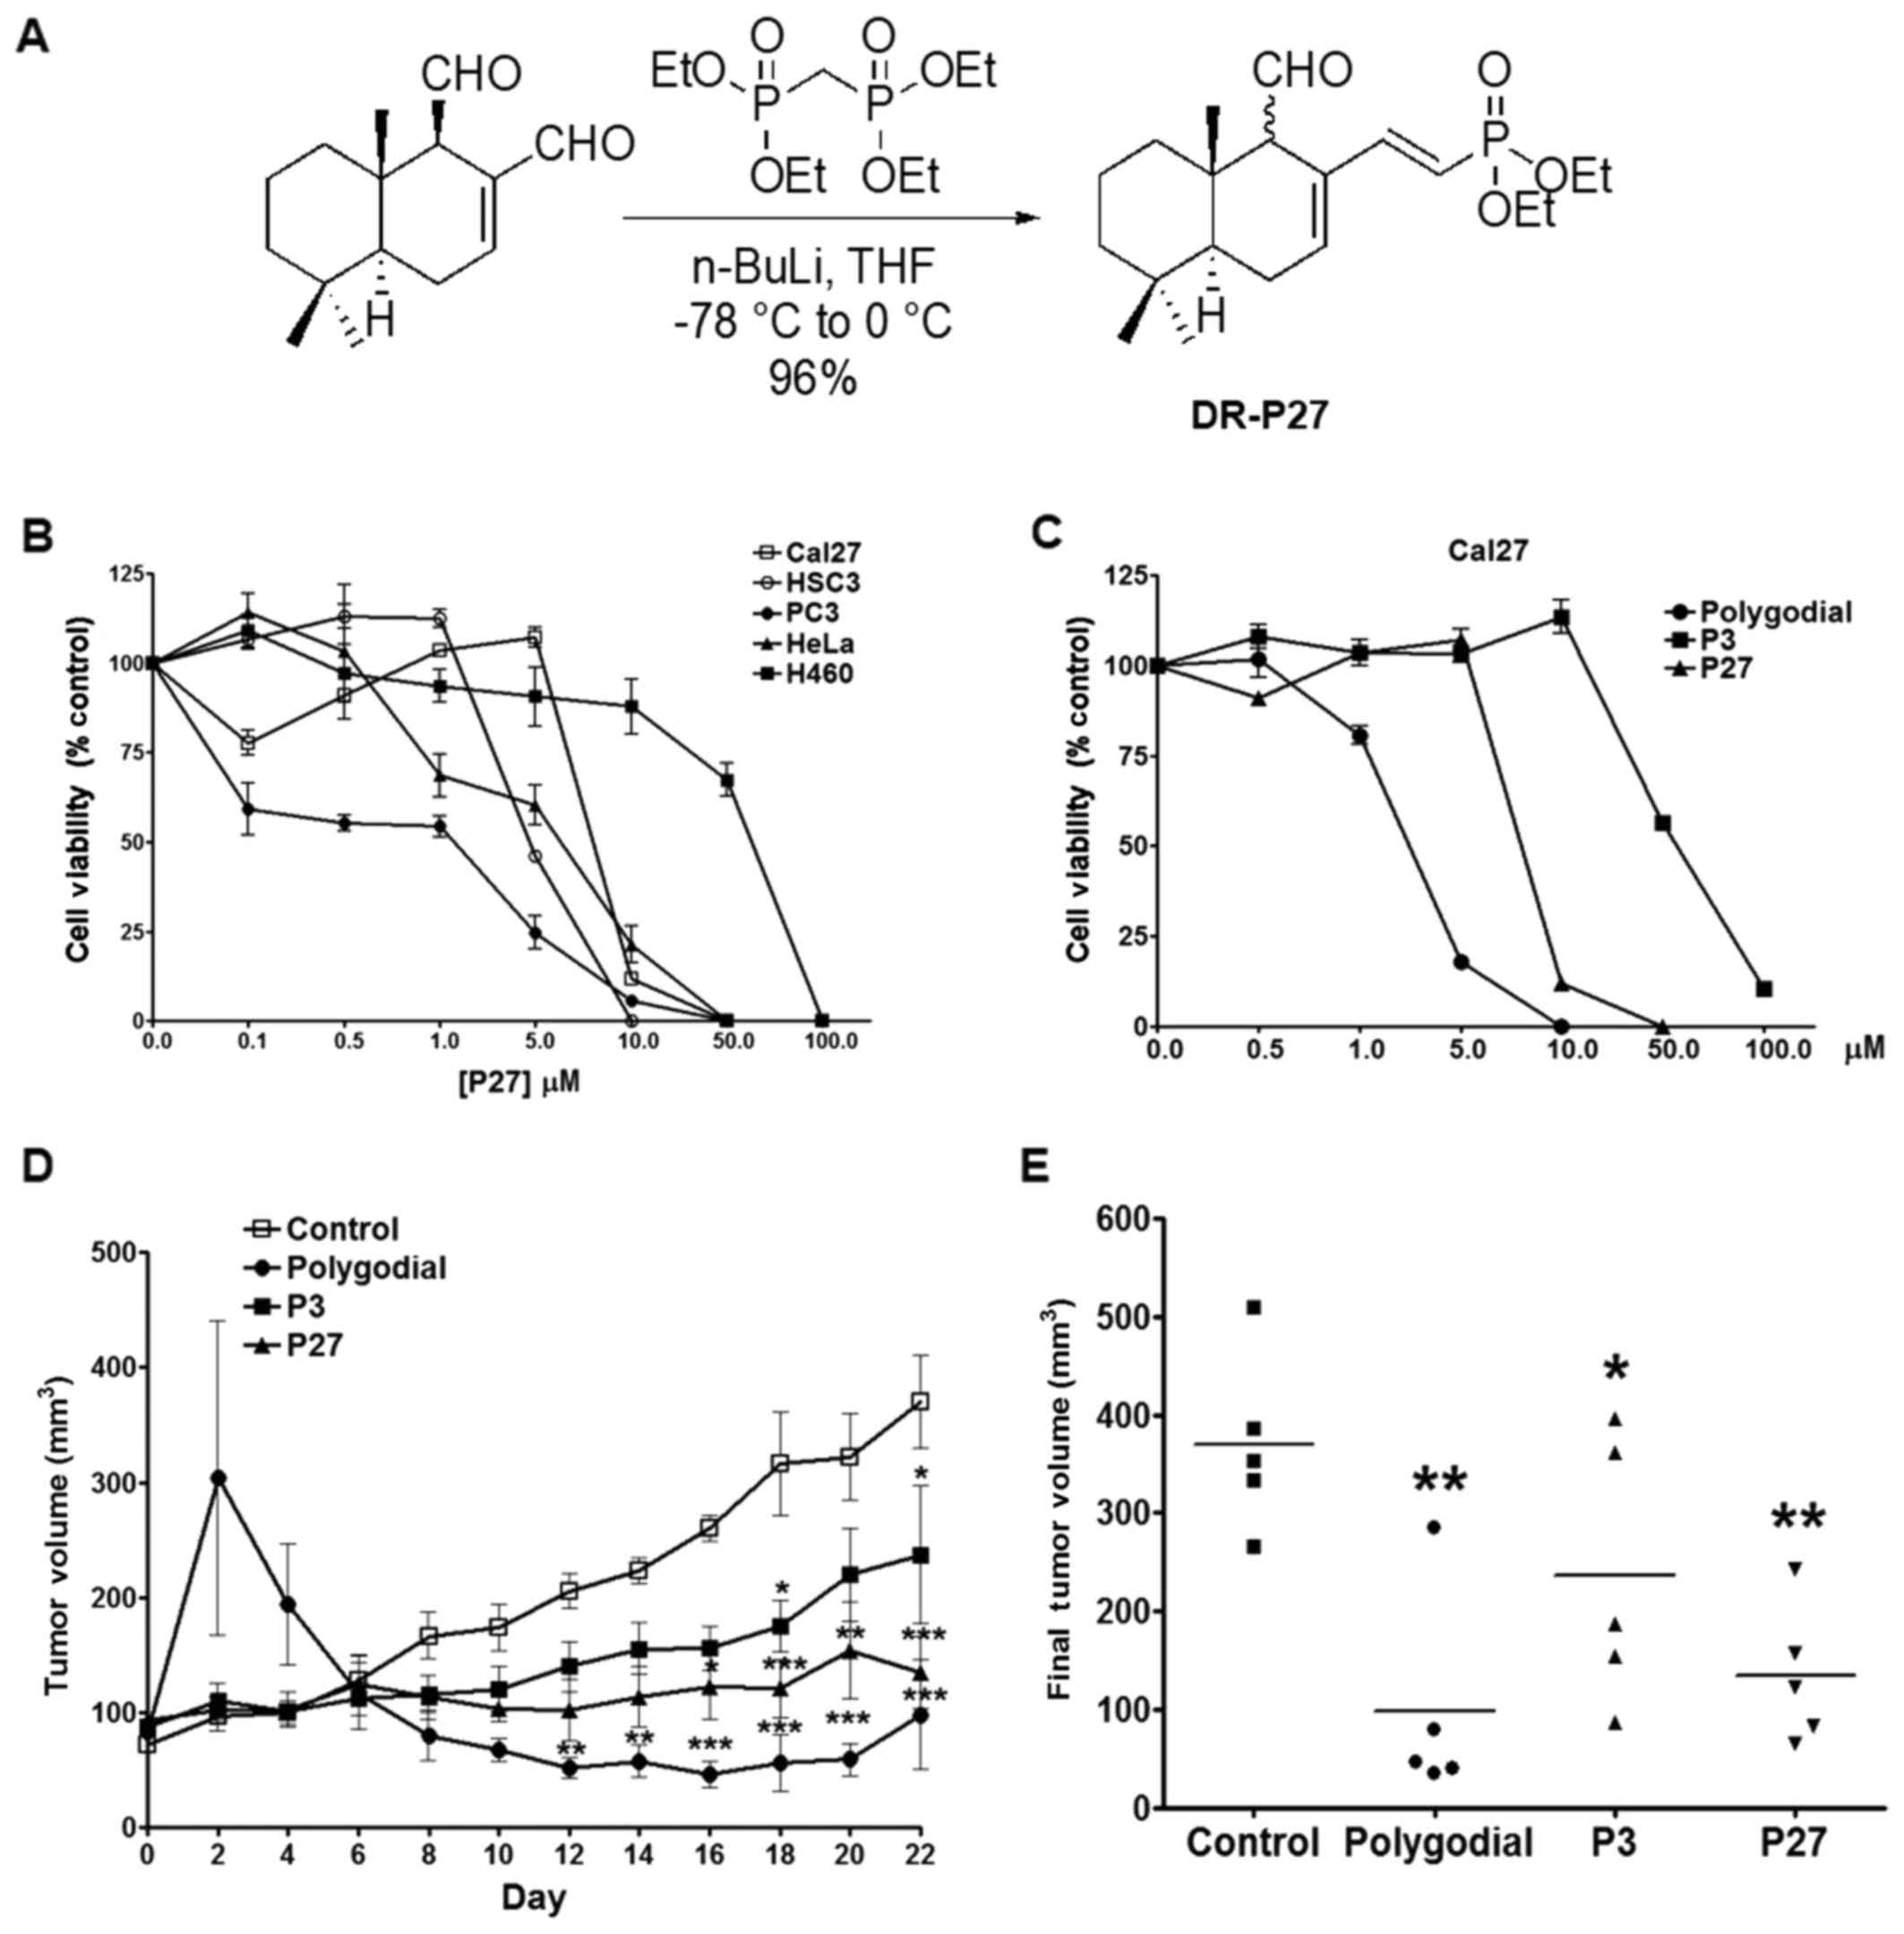 Novel Polygodial Analogs P3 And P27 Efficacious Therapeutic Agents Led Driver Circuit Diagram Likewise Besides A Schematic Of Synthesis B Mts Viability Assay In Cancer Cell Lines Treated With For 48 H N4 Per Group C Assays